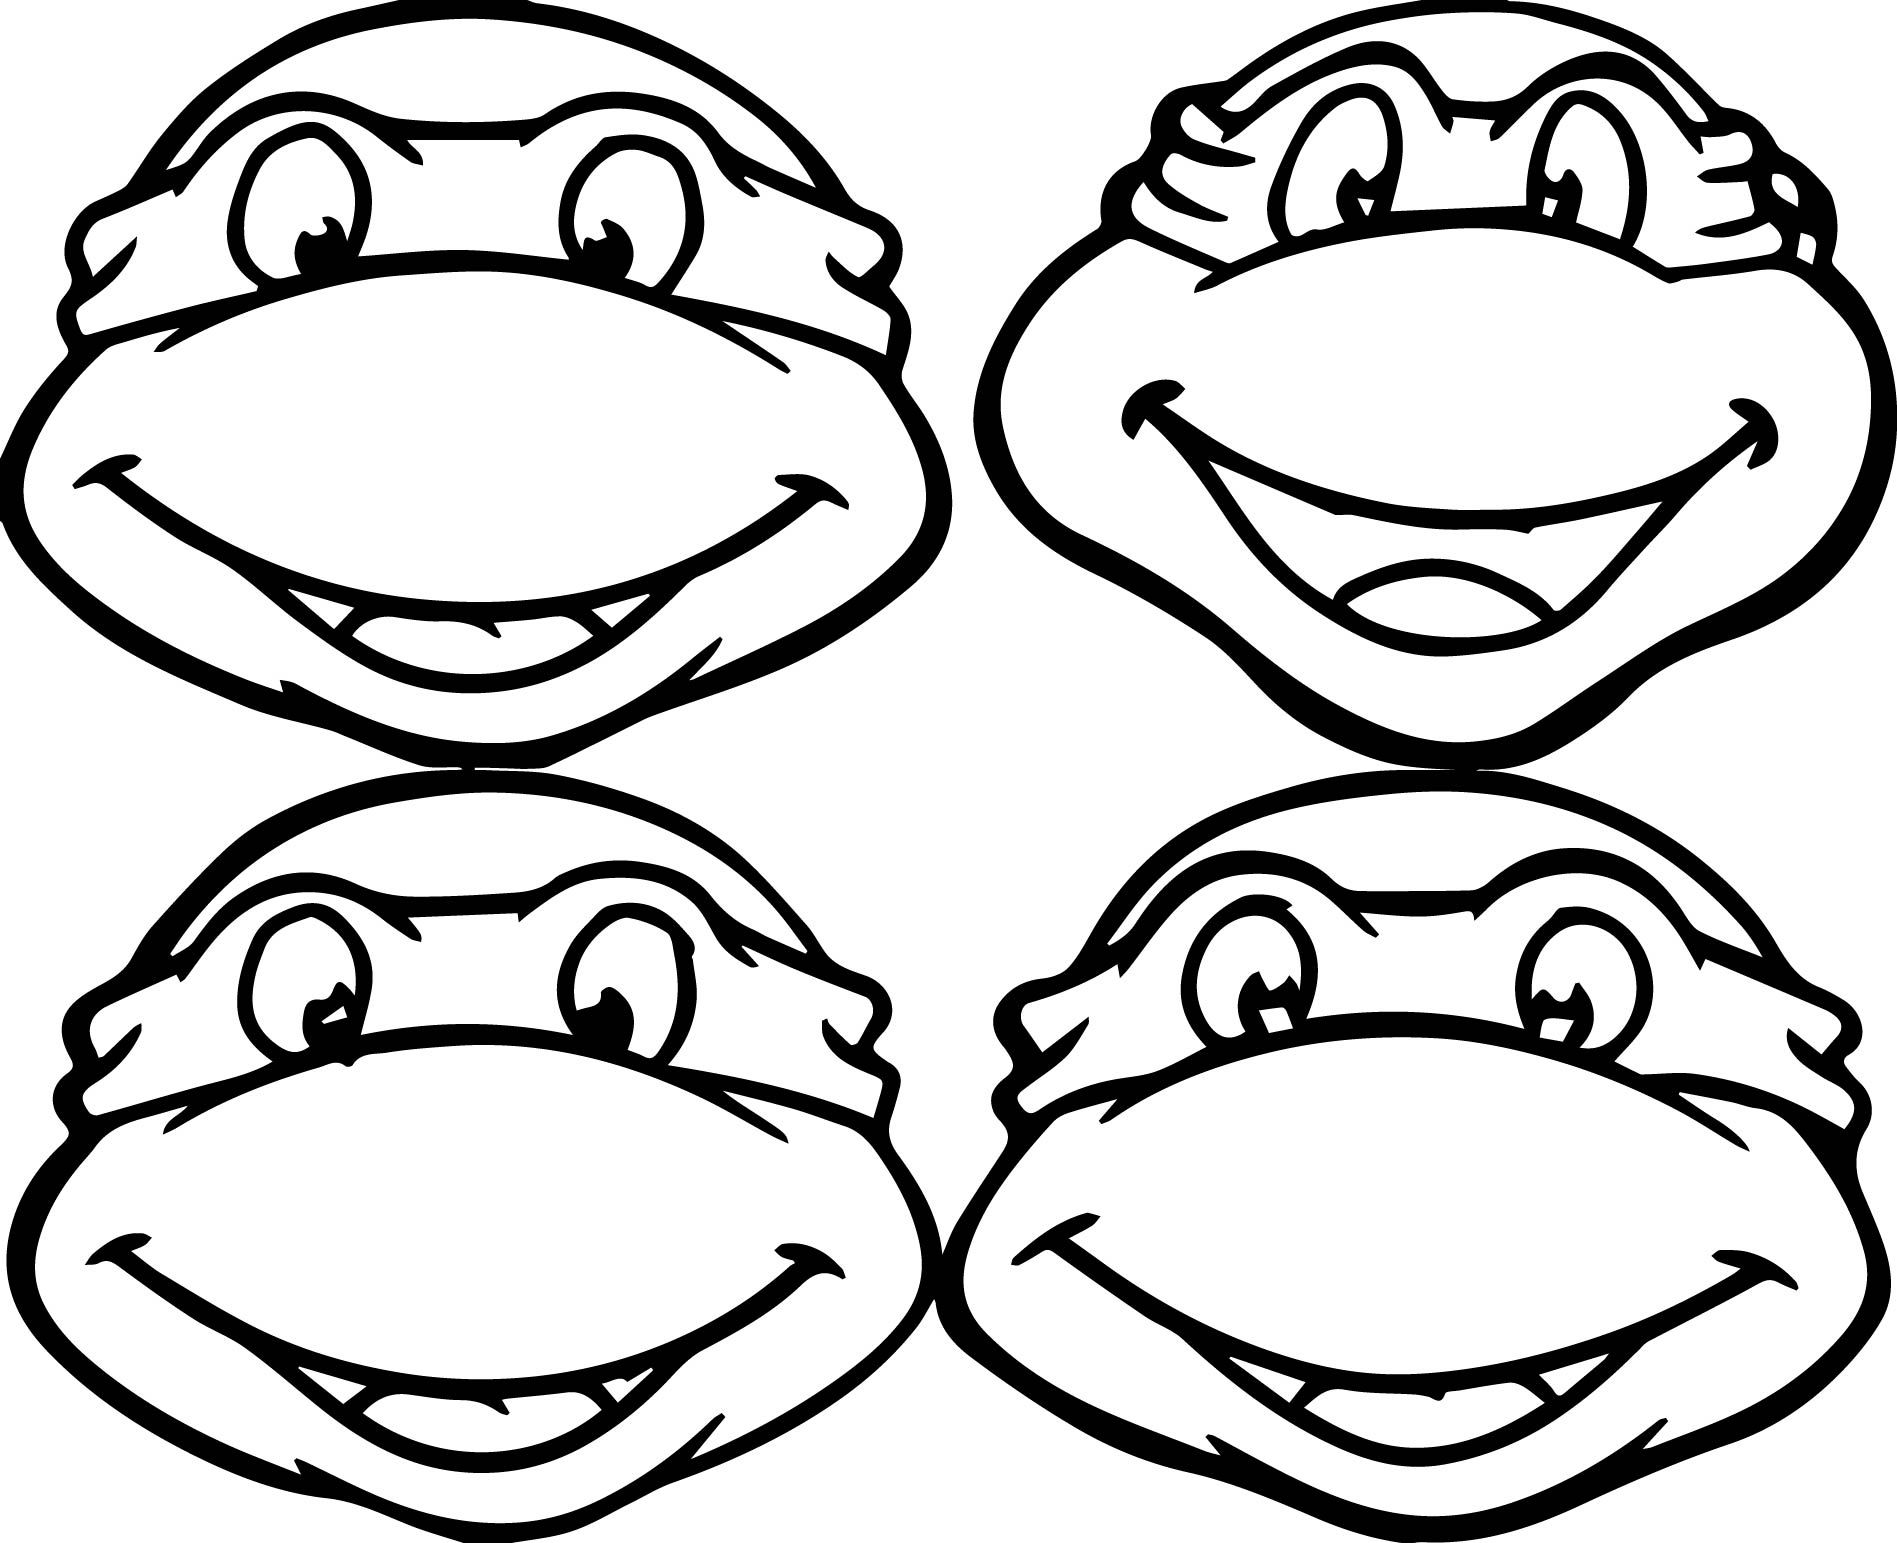 Lego Ninja Turtles Coloring Pages At Getcolorings